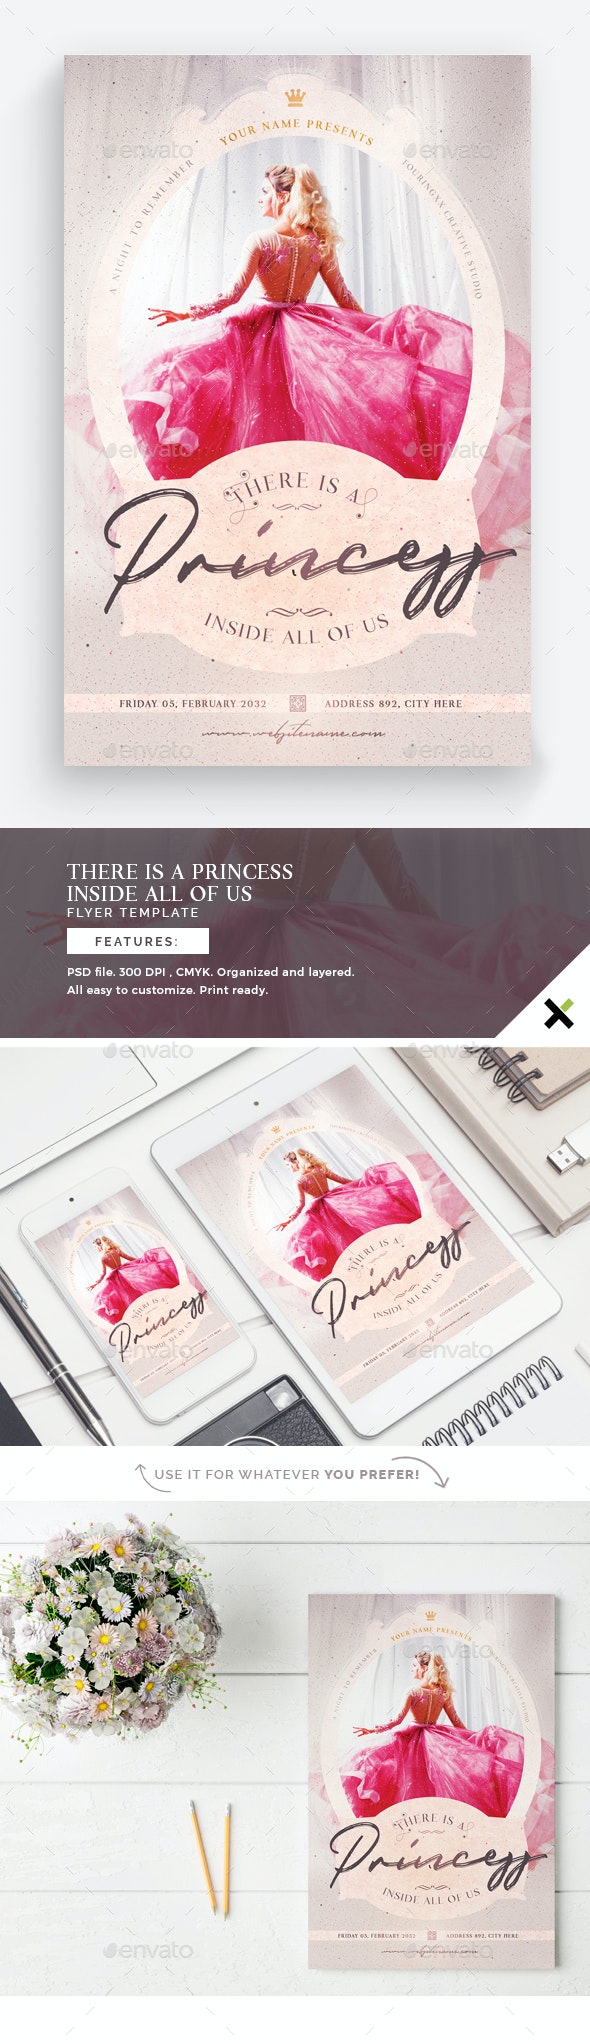 There Is A Princess Inside All Of Us Flyer Template - Flyers Print Templates